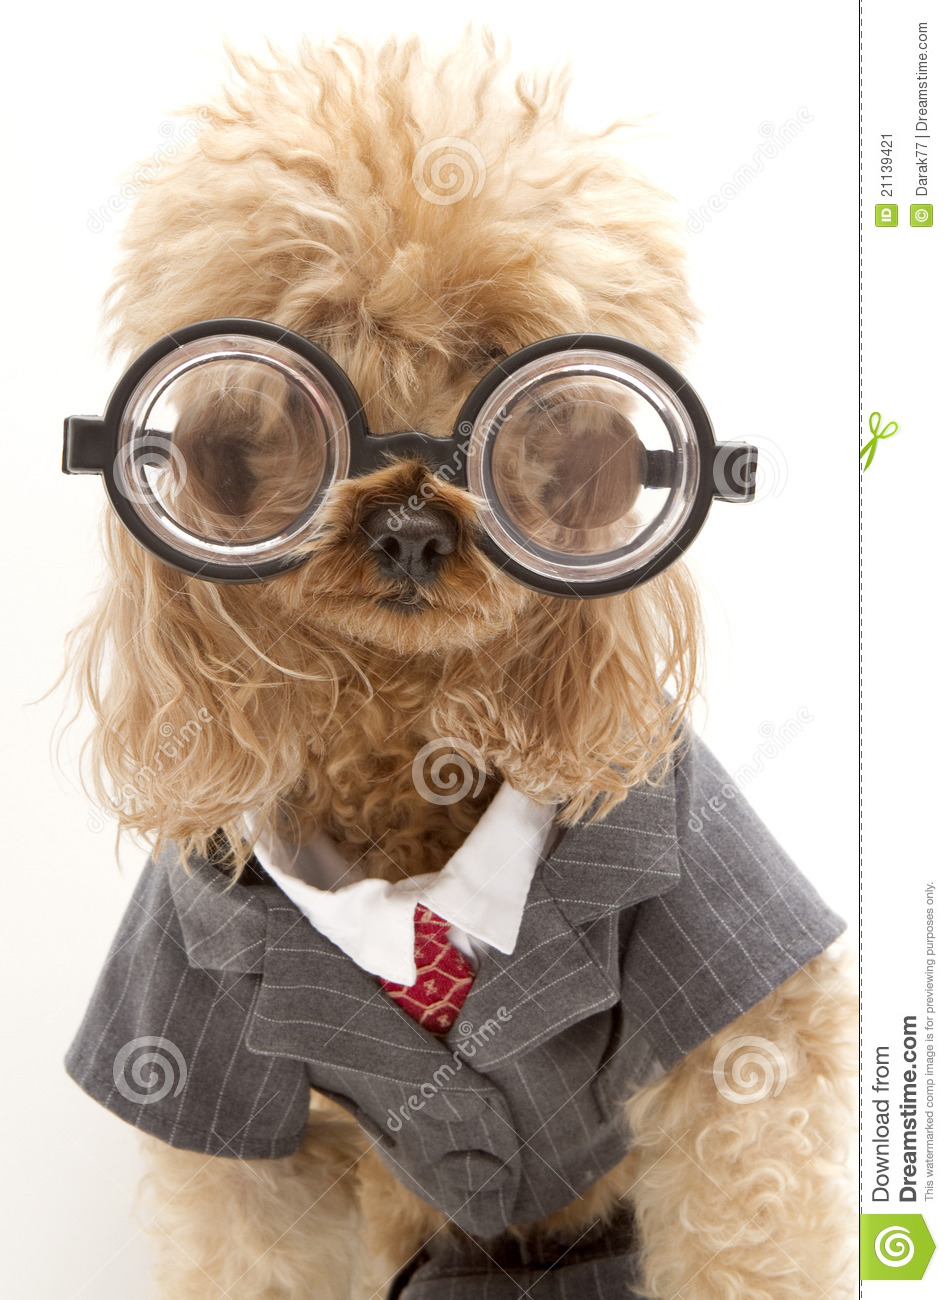 Dog Business Suit photo - 2